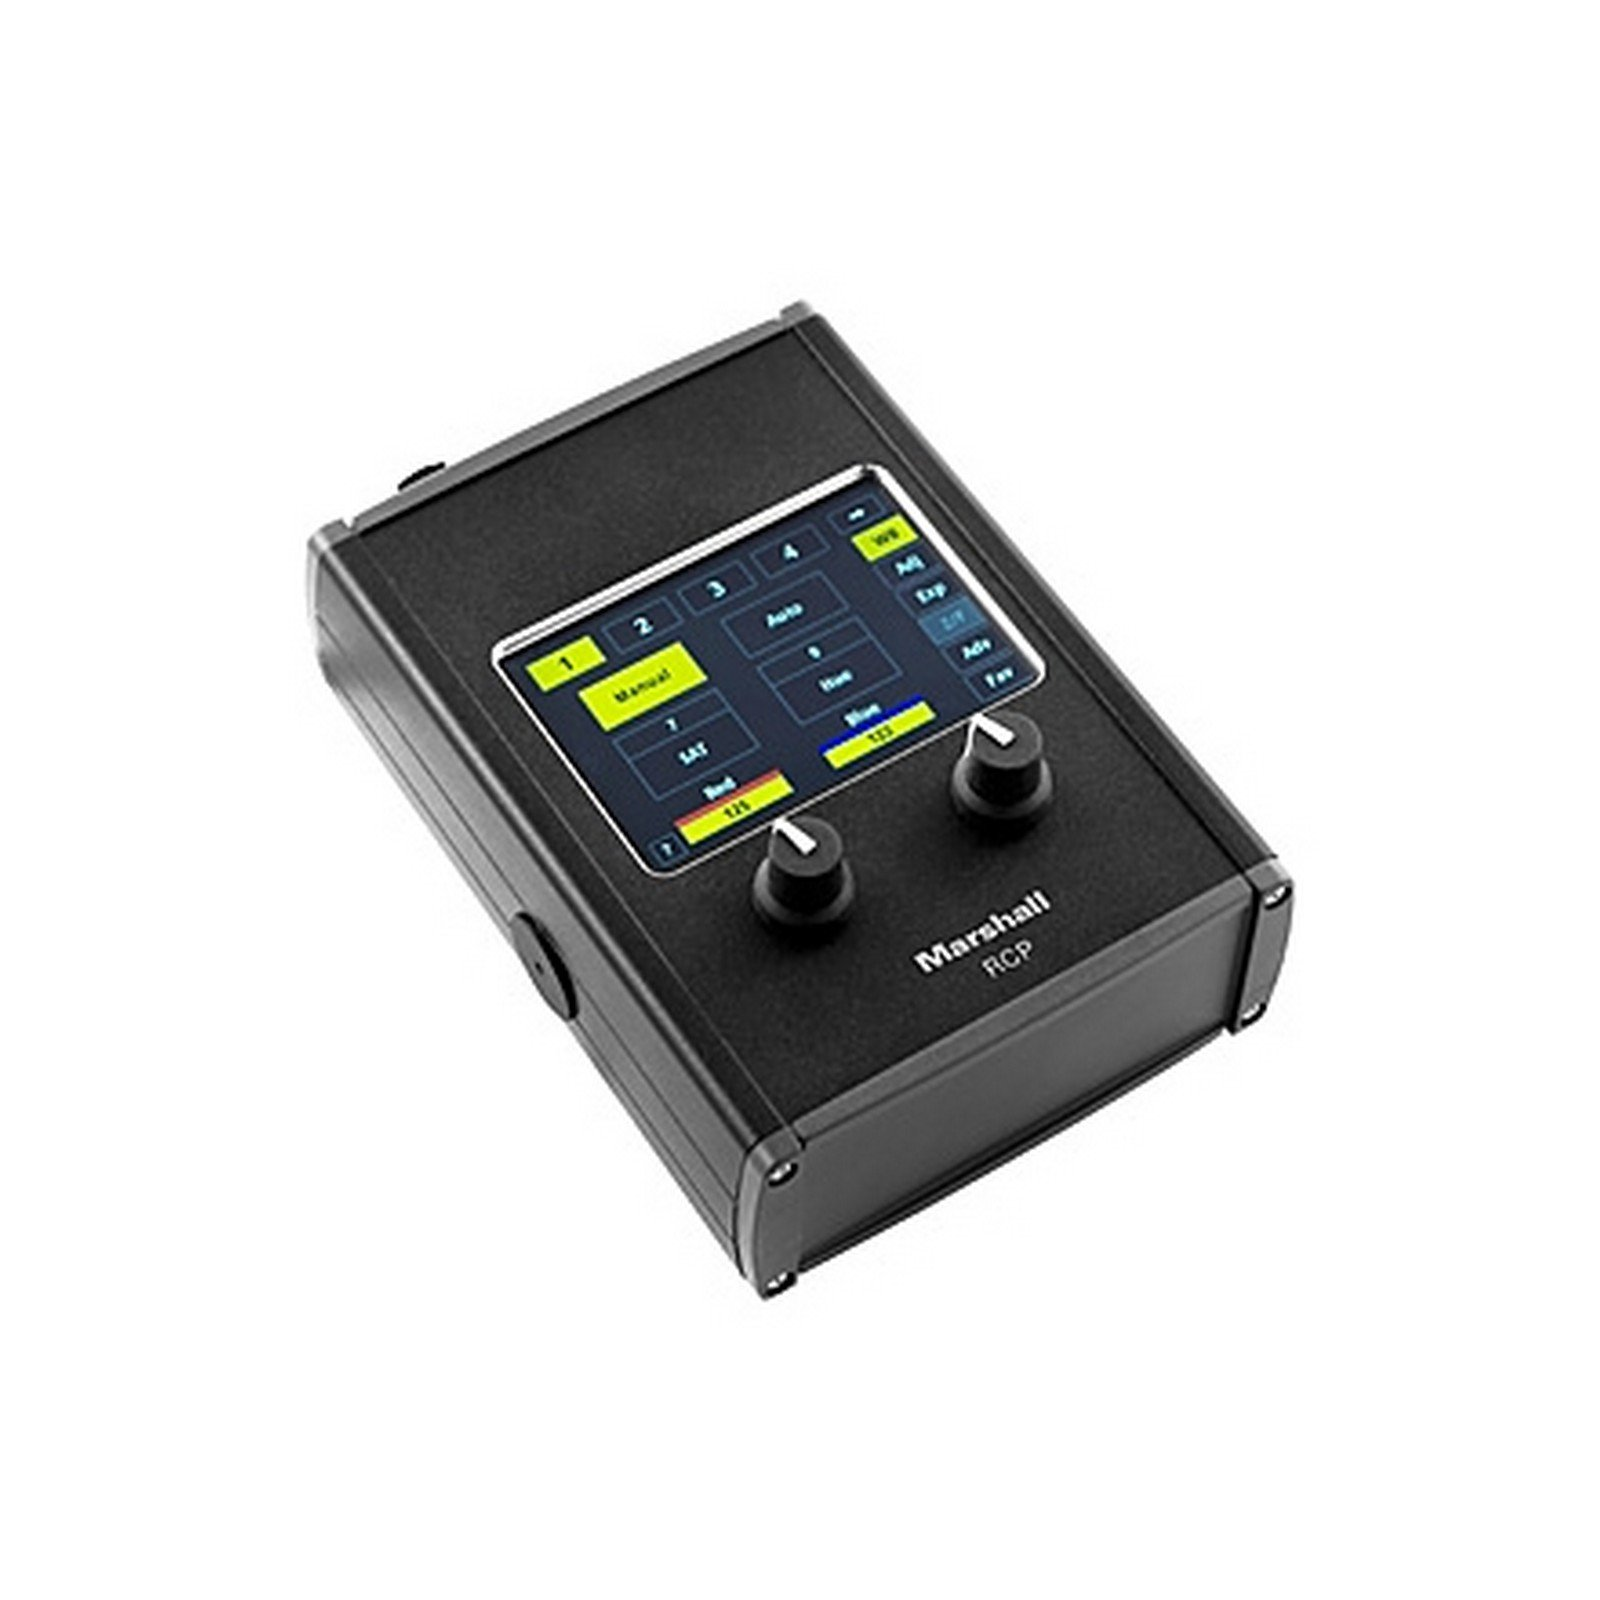 Marshall Electronics CV-RCP-100 | Touchscreen RCP Camera Control by Marshall